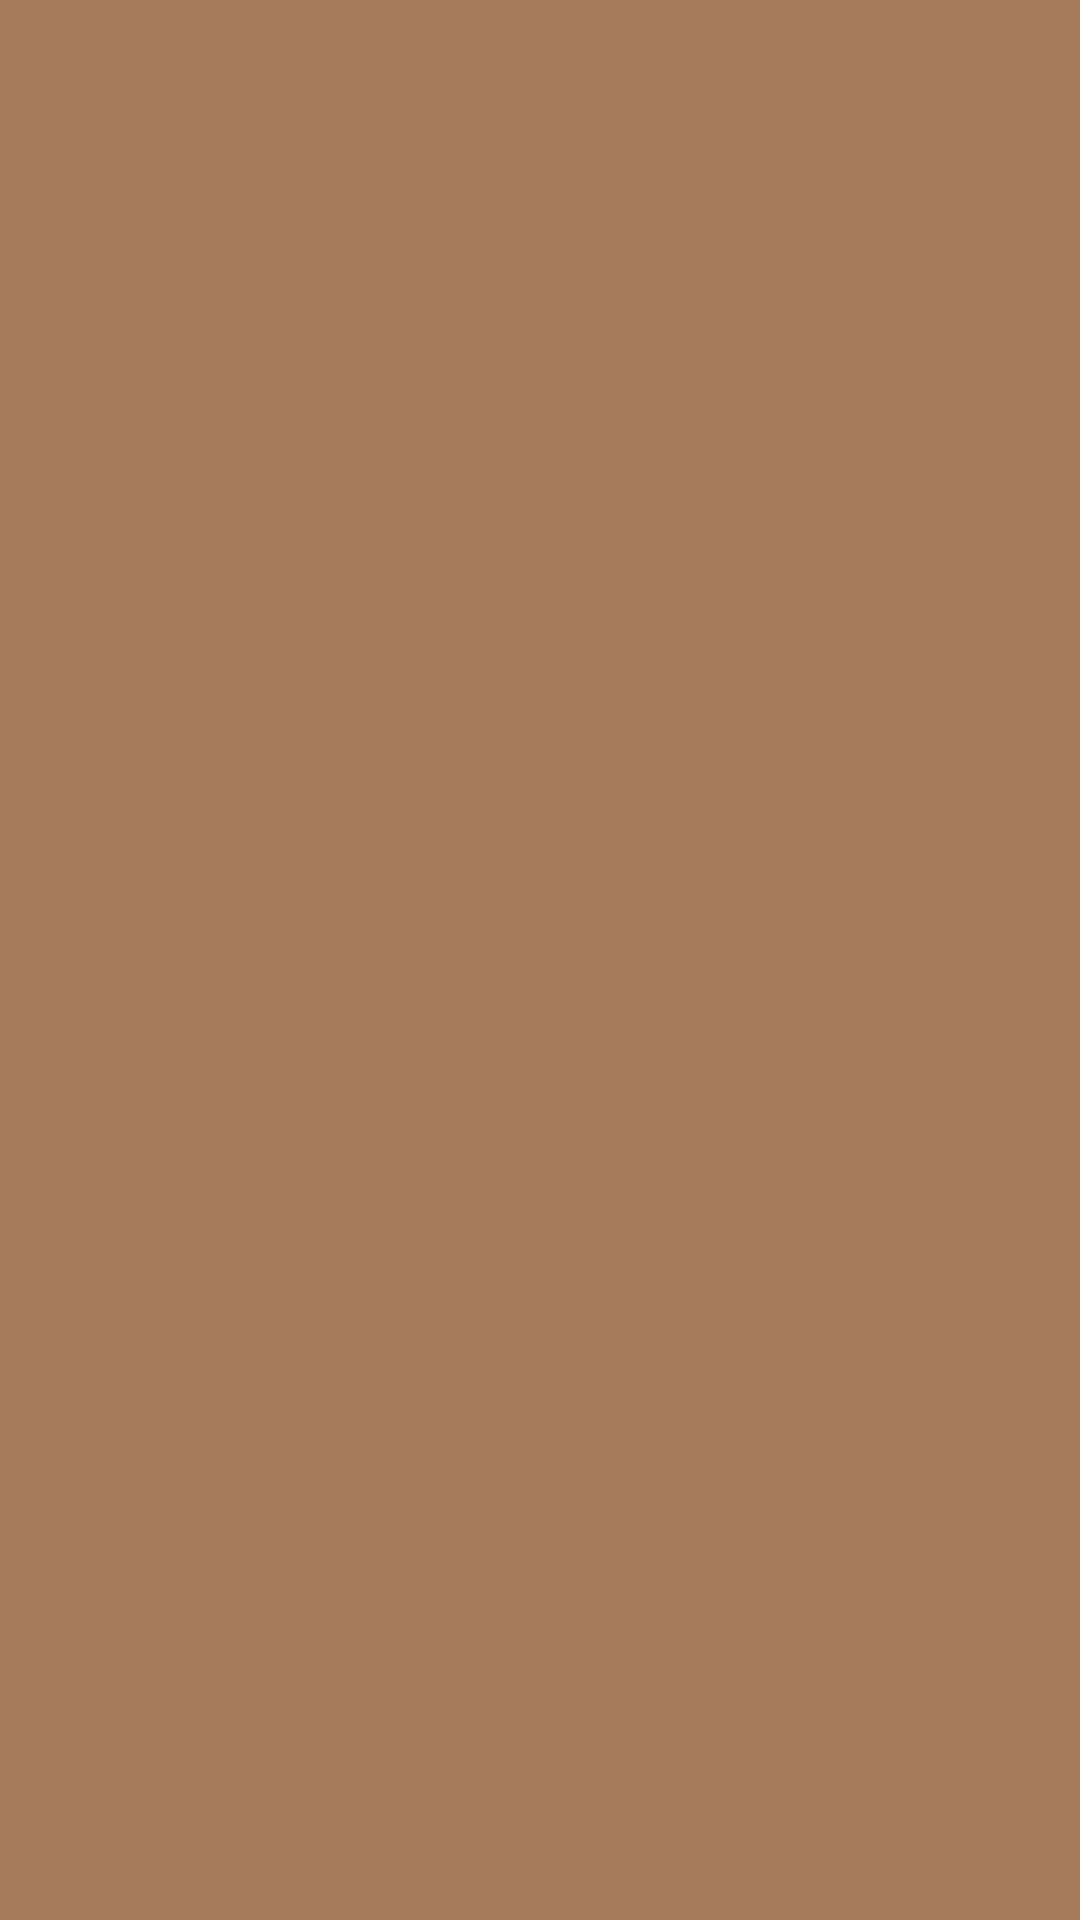 1080x1920 Tuscan Tan Solid Color Background